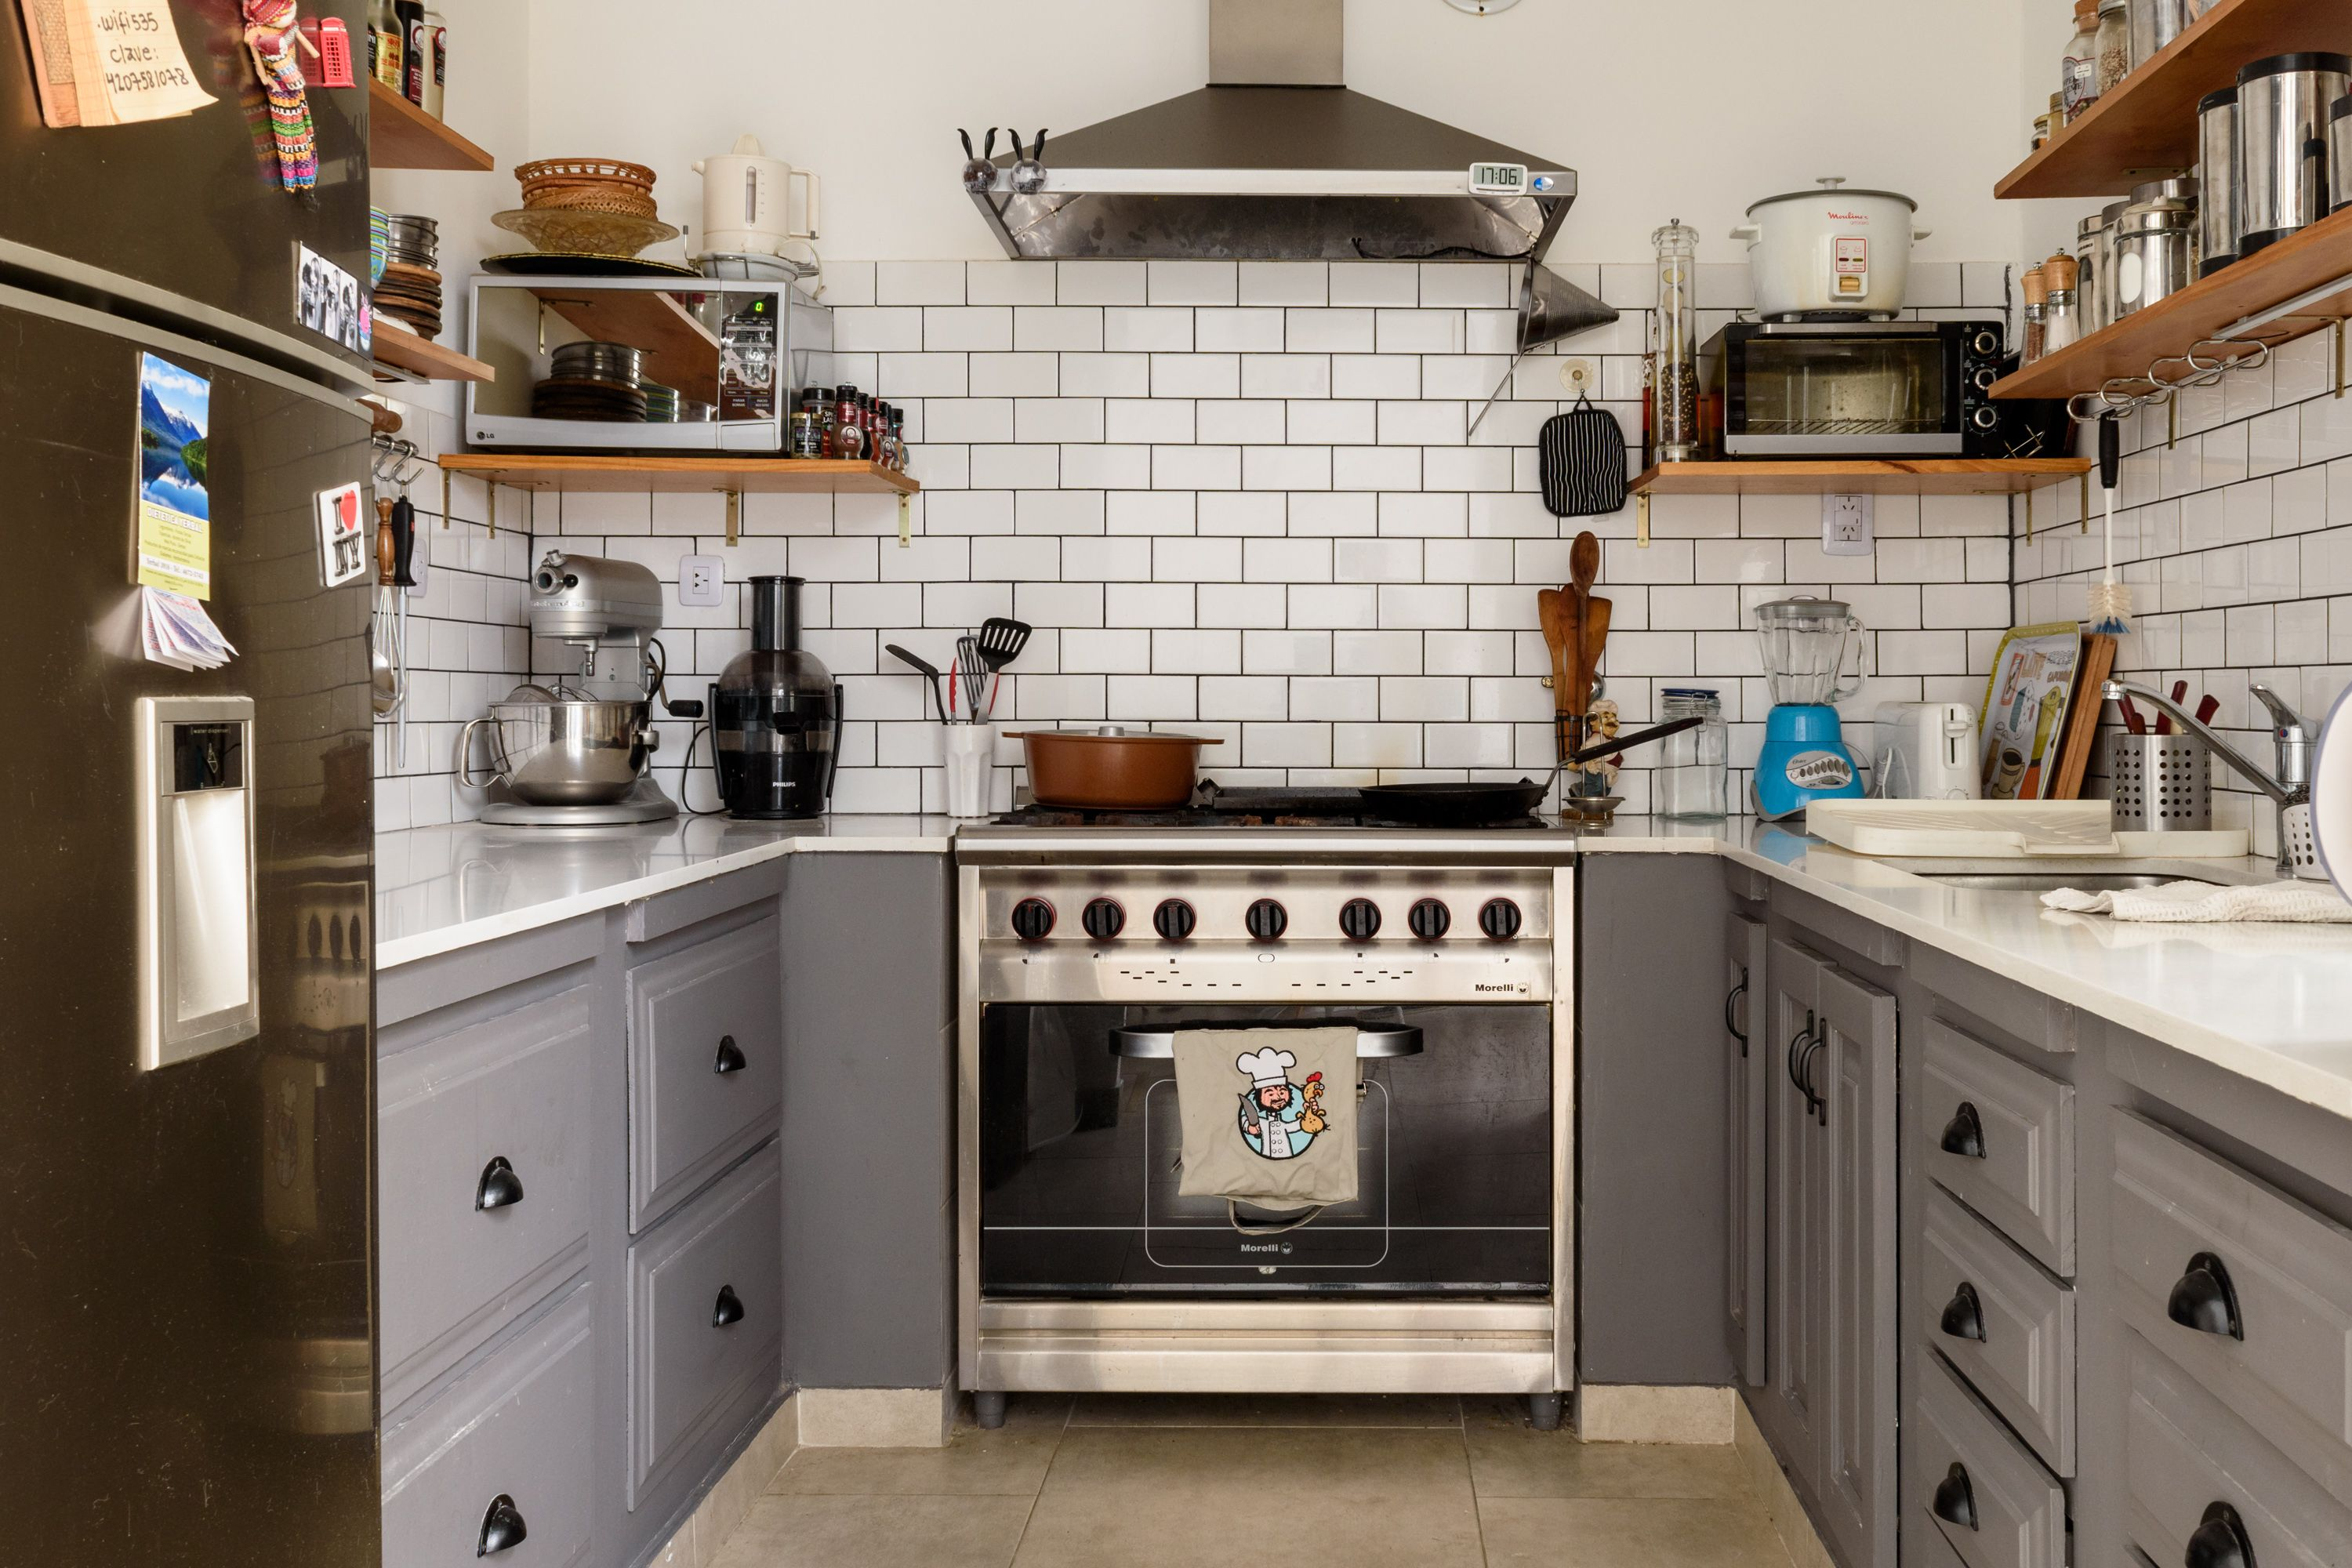 The kitchen was a gut renovation completely DIYed by Lionel. He installed tiles, cabinets and appliances.